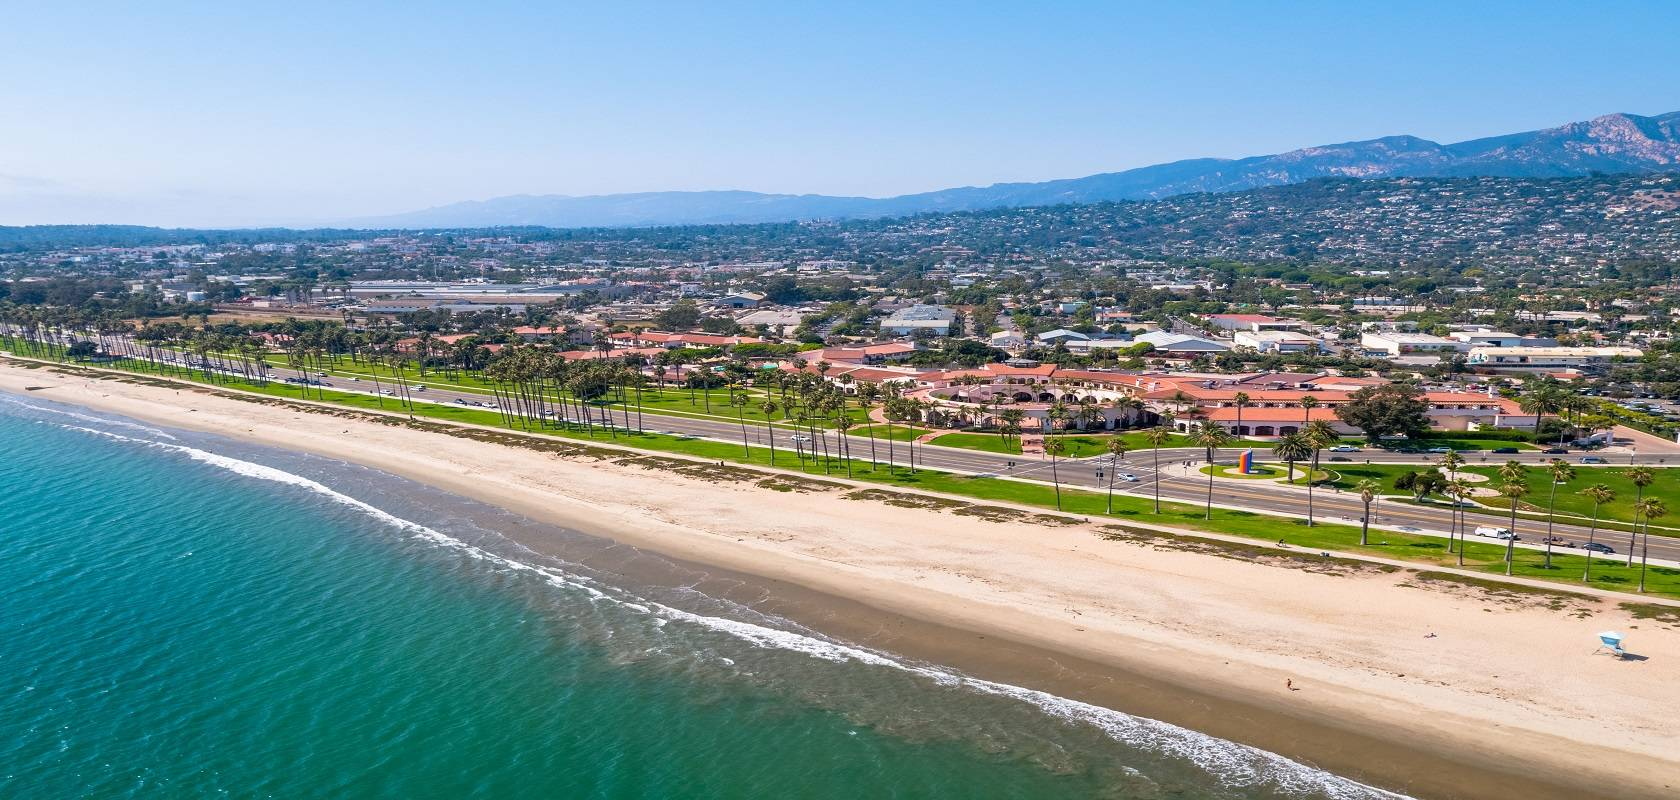 Resort, beach, Santa Barbara